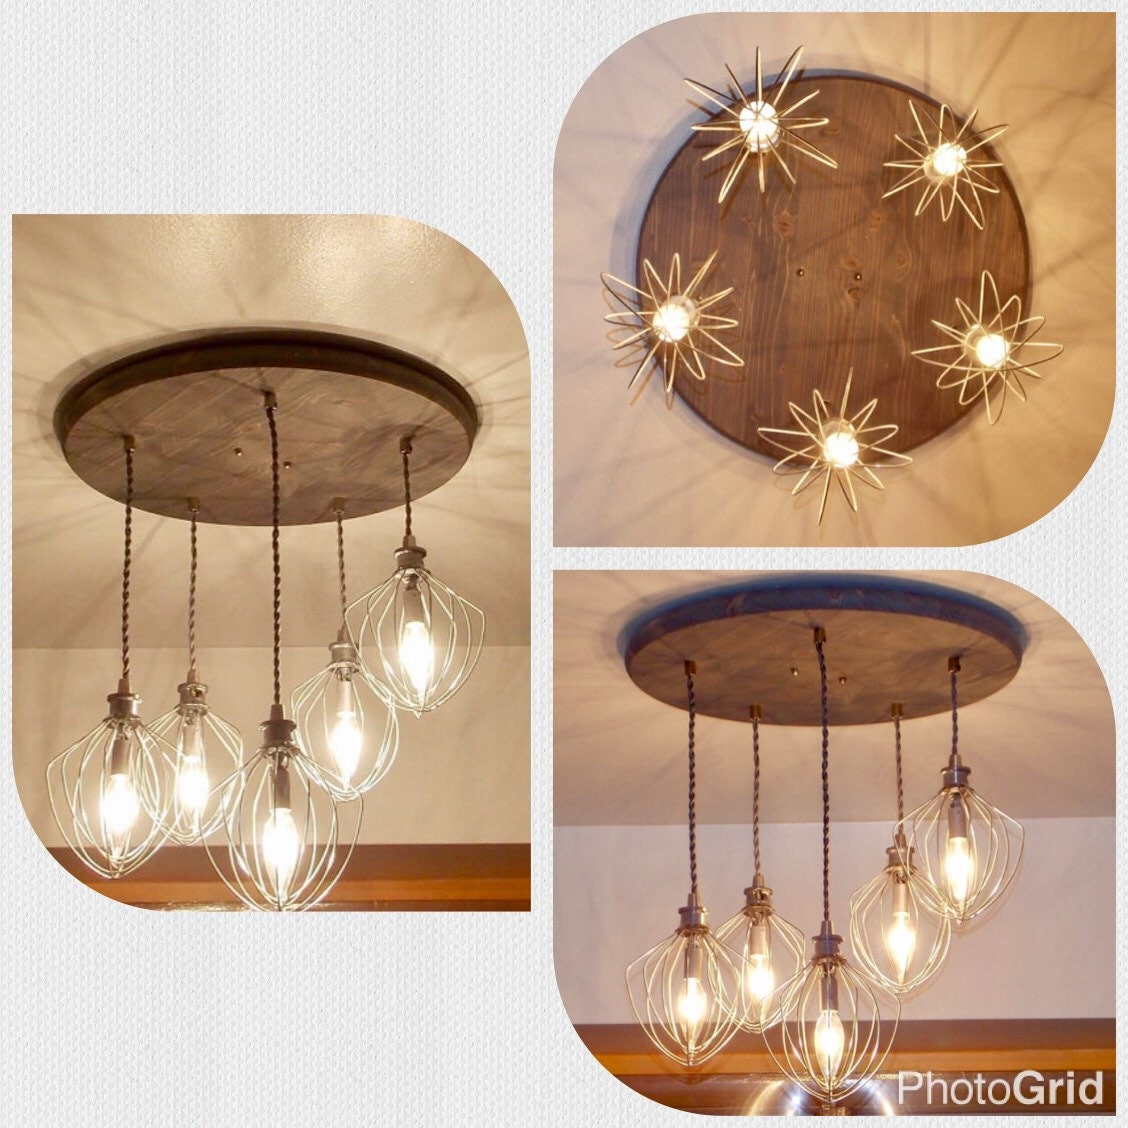 Farmhouse Chandeliers For Dining Room: Farmhouse Chandelier Restaurant Lighting Dining Room